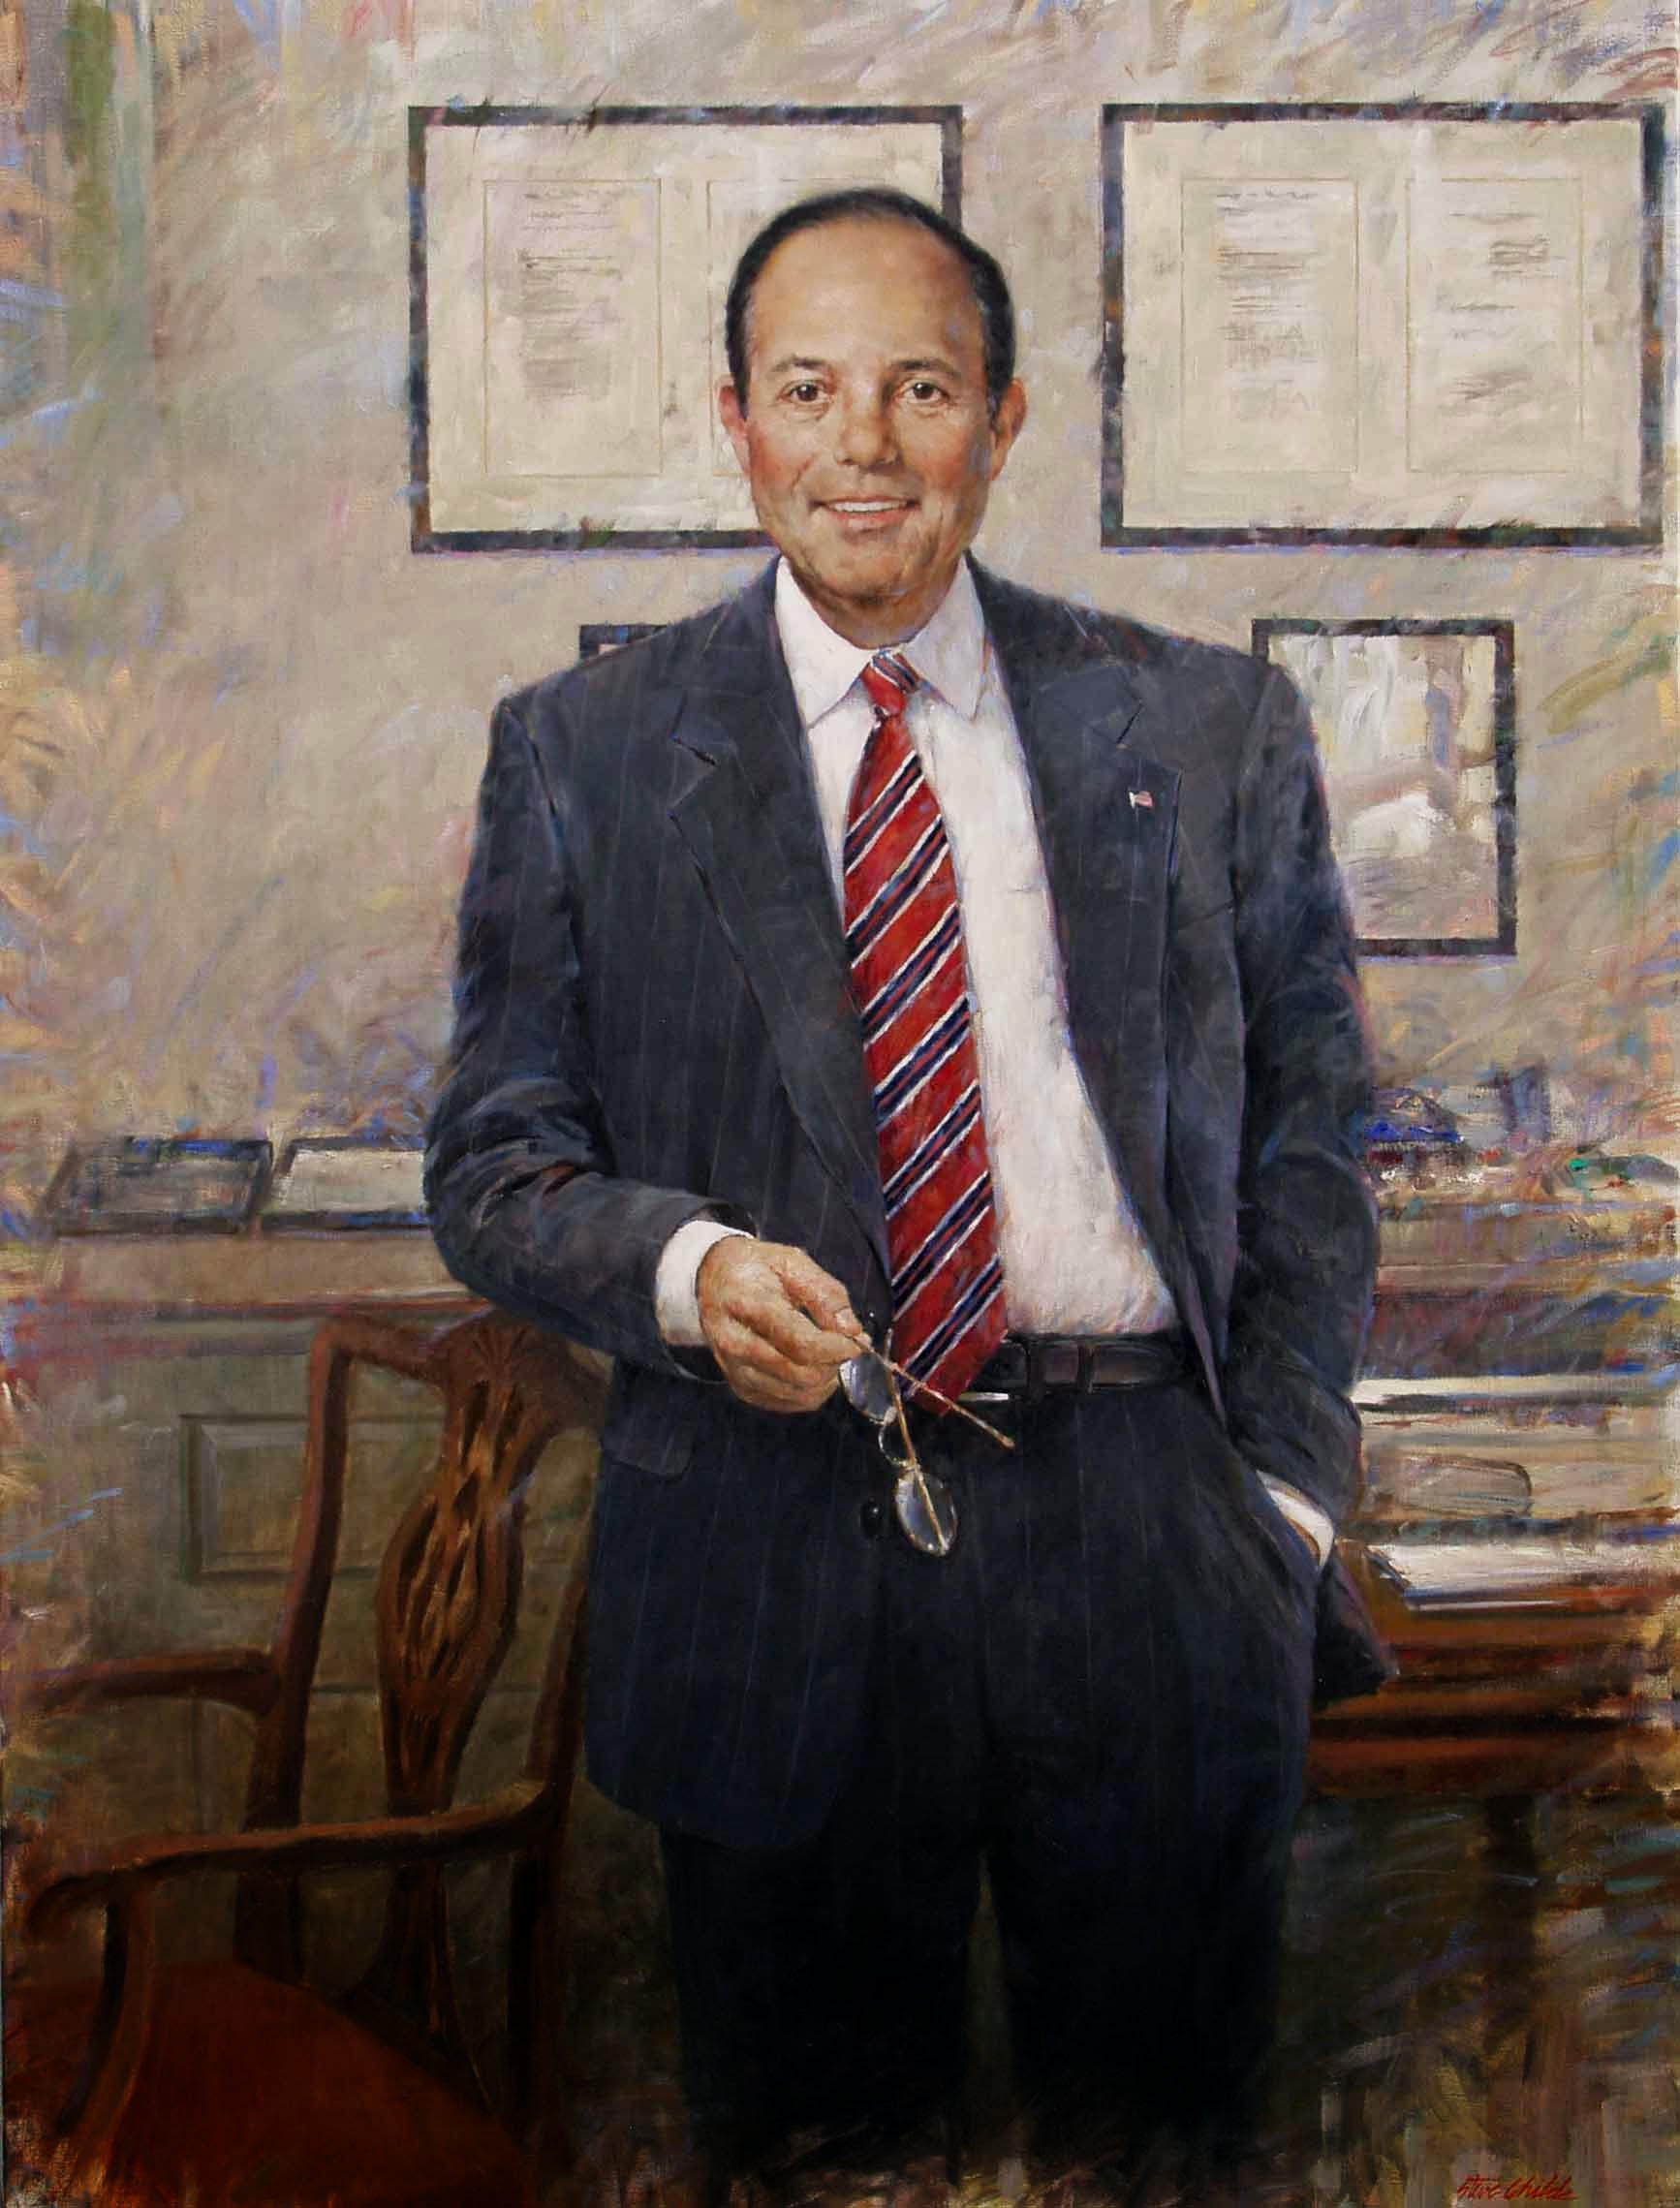 Man Standing in Office Holding Glasses - 38x48